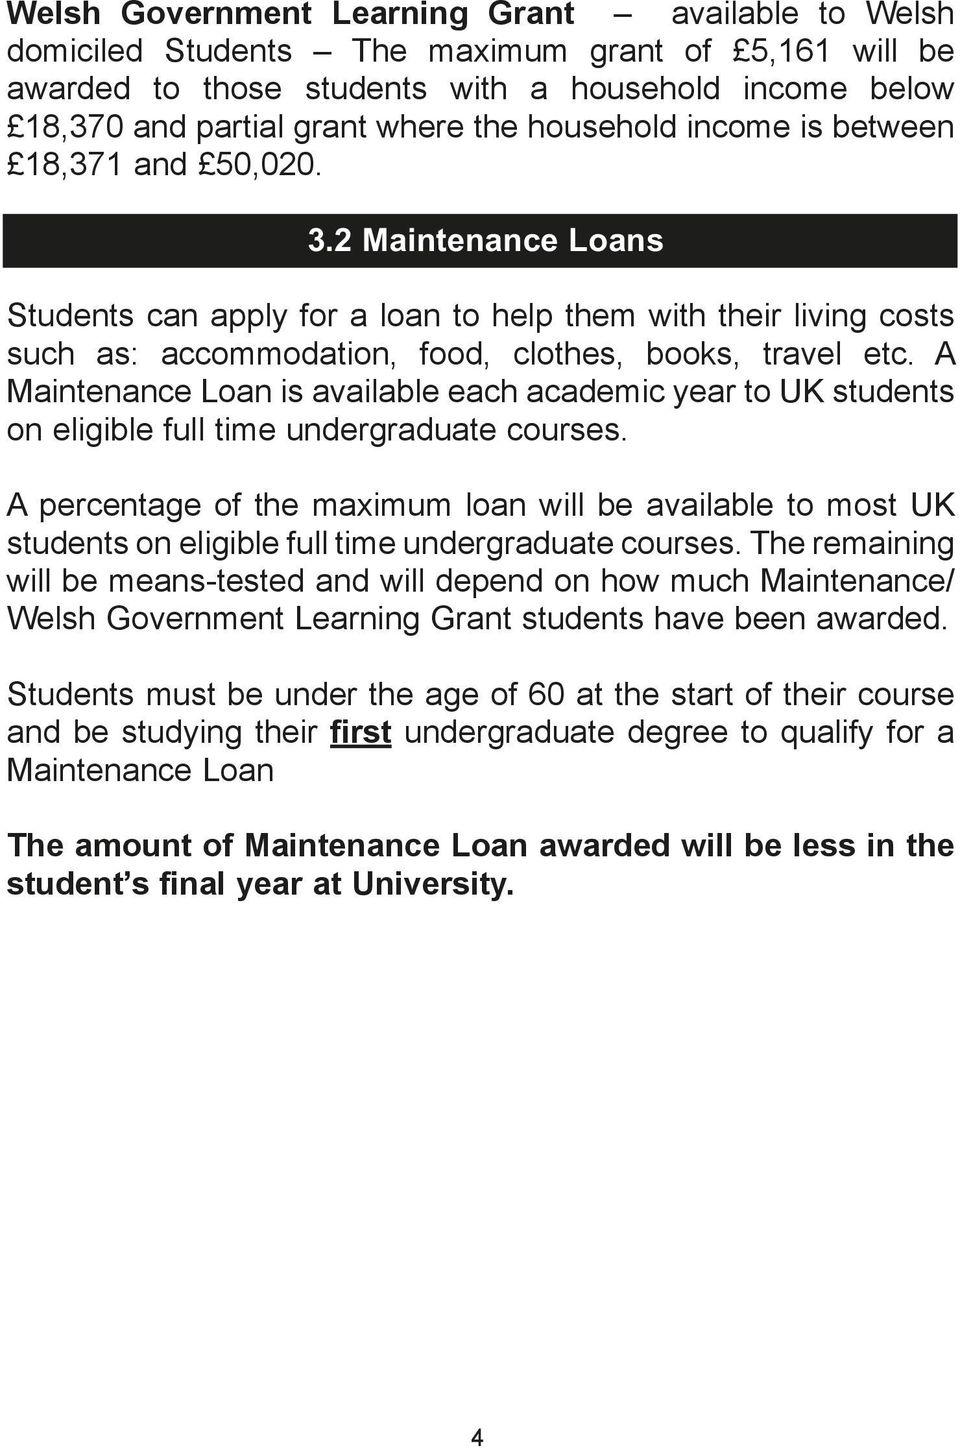 A Maintenance Loan is available each academic year to UK students on eligible full time undergraduate courses.